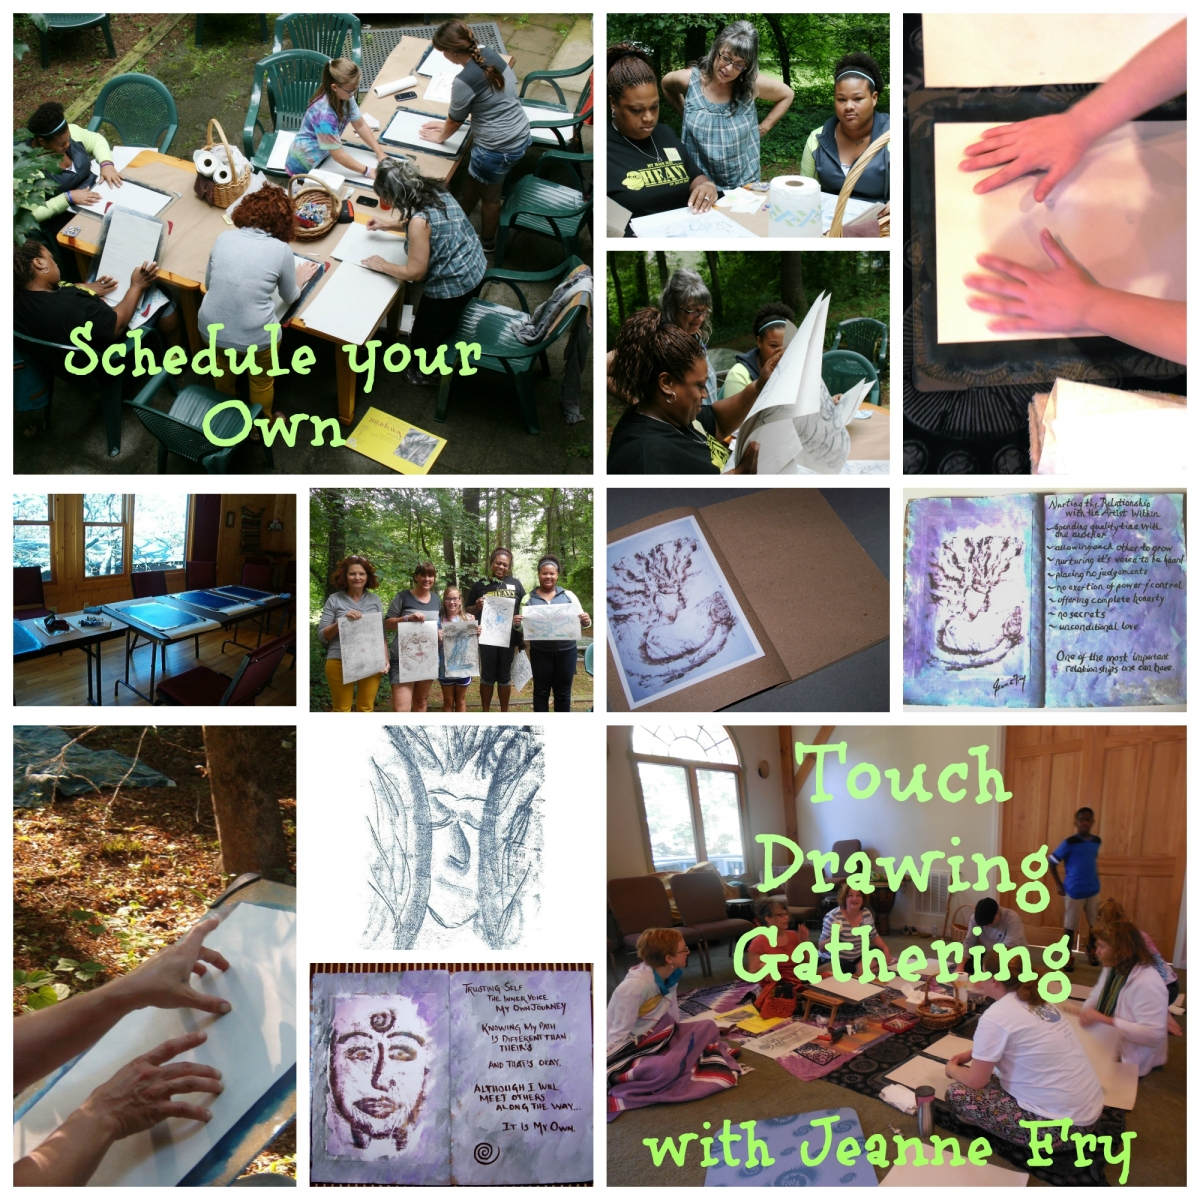 Schedule your Own Mini Touch Drawing Gatherings